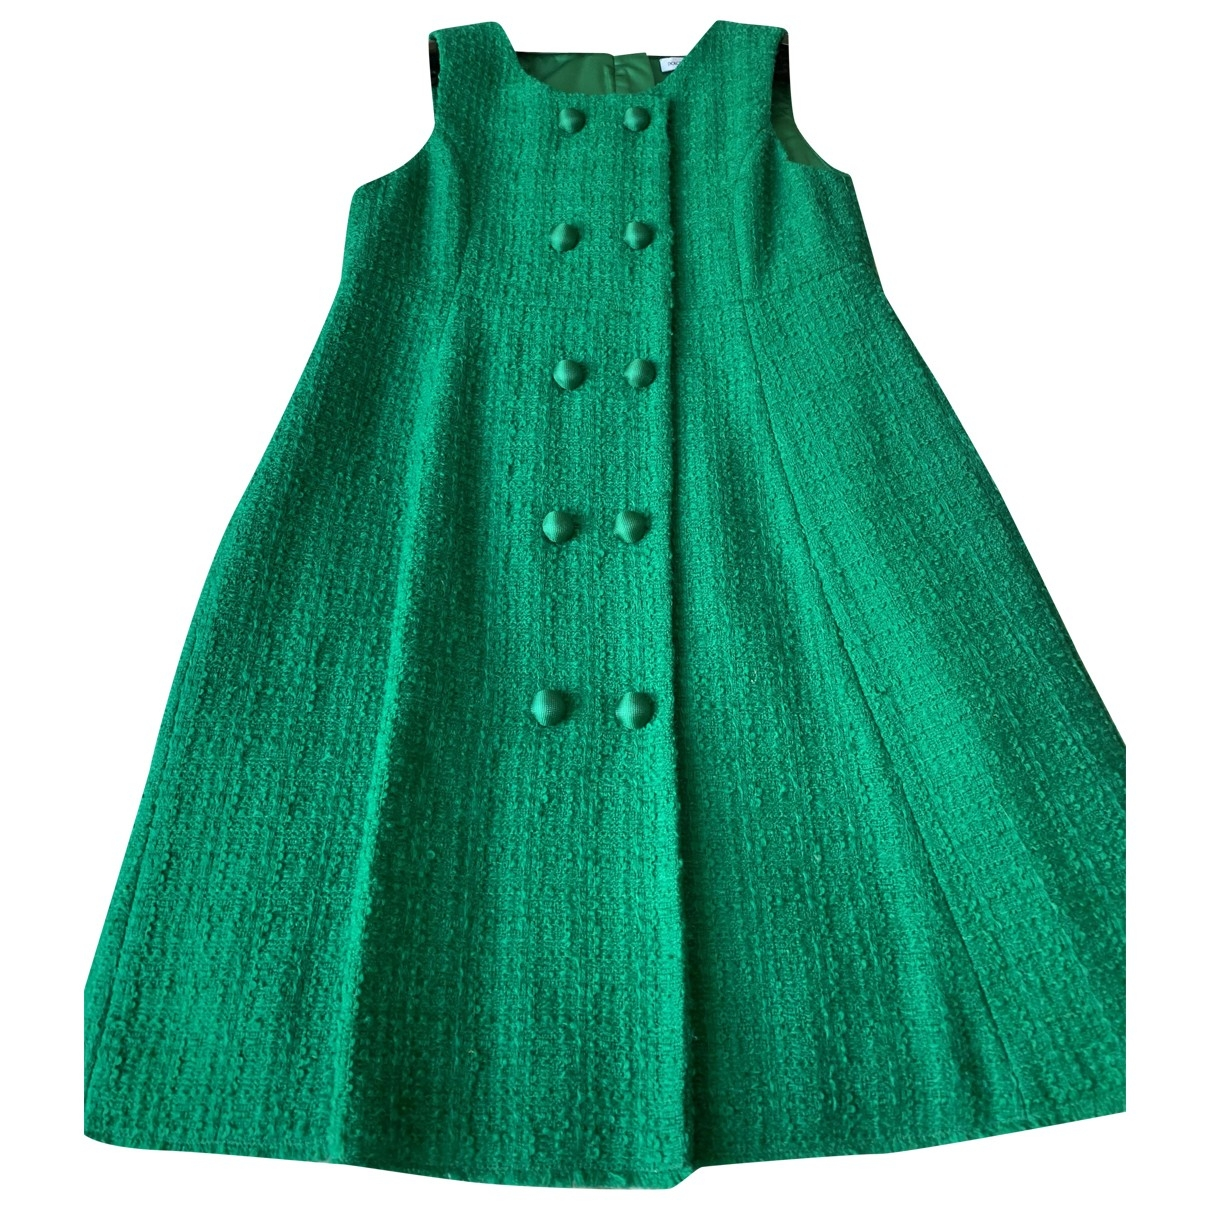 Dolce & Gabbana \N Green Wool dress for Kids 8 years - up to 128cm FR